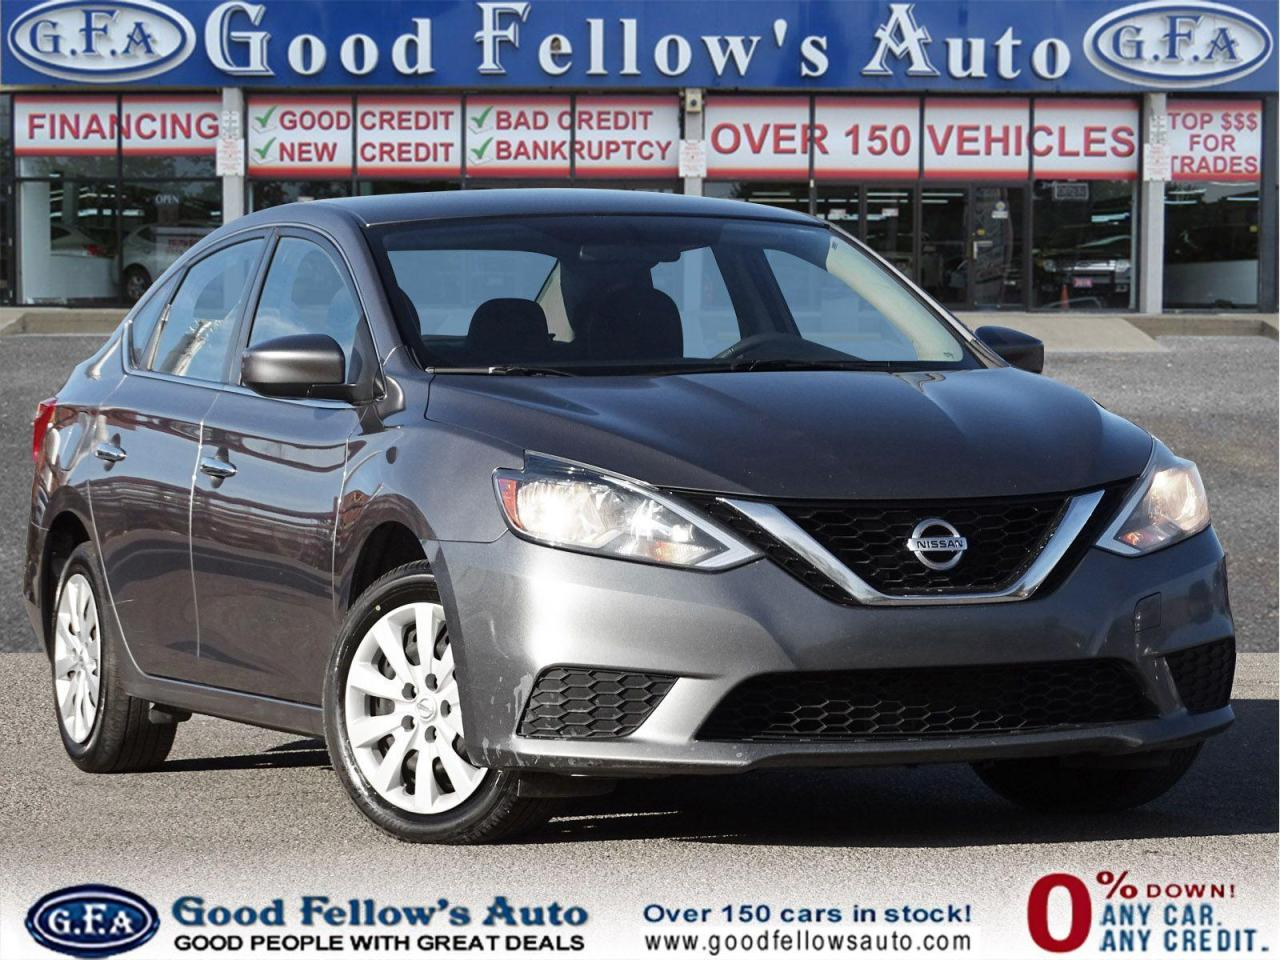 used 2017 Nissan Sentra car, priced at $9,900